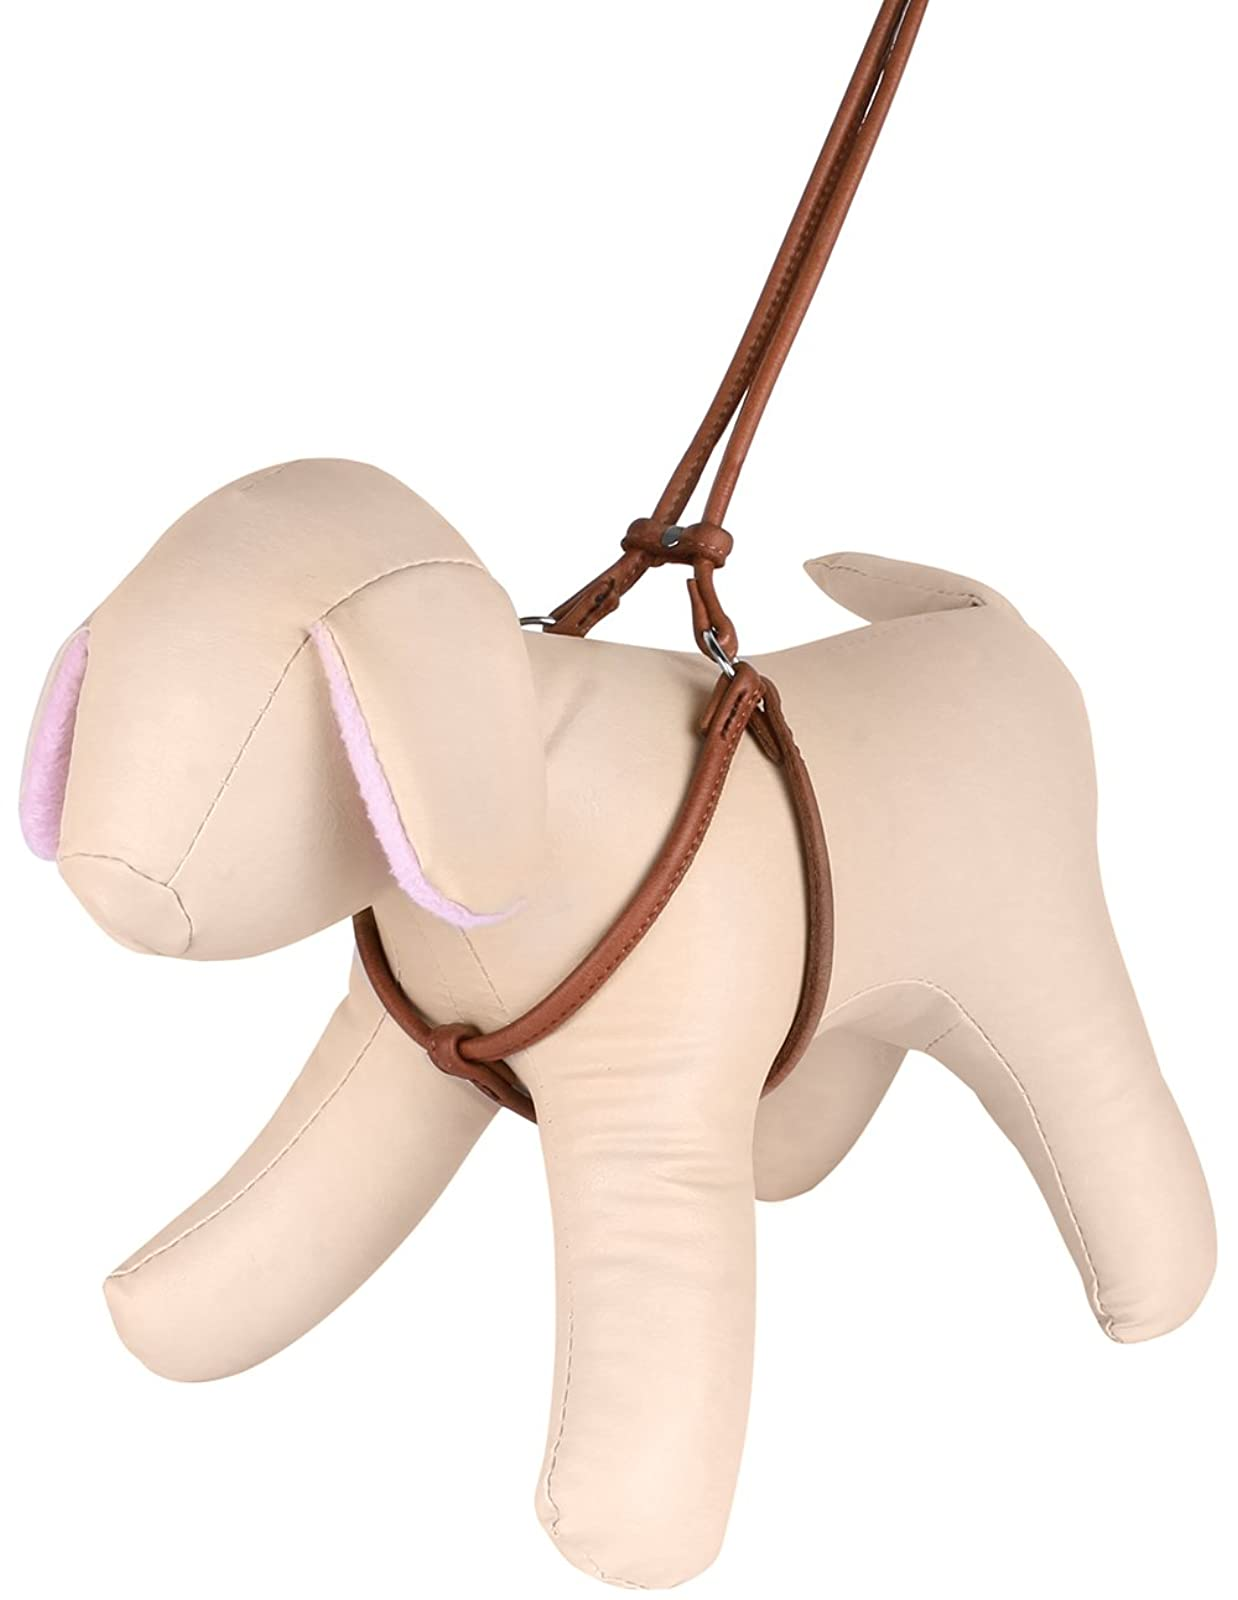 CollarDirect Rolled Leather Dog Harness Small Puppy - 3